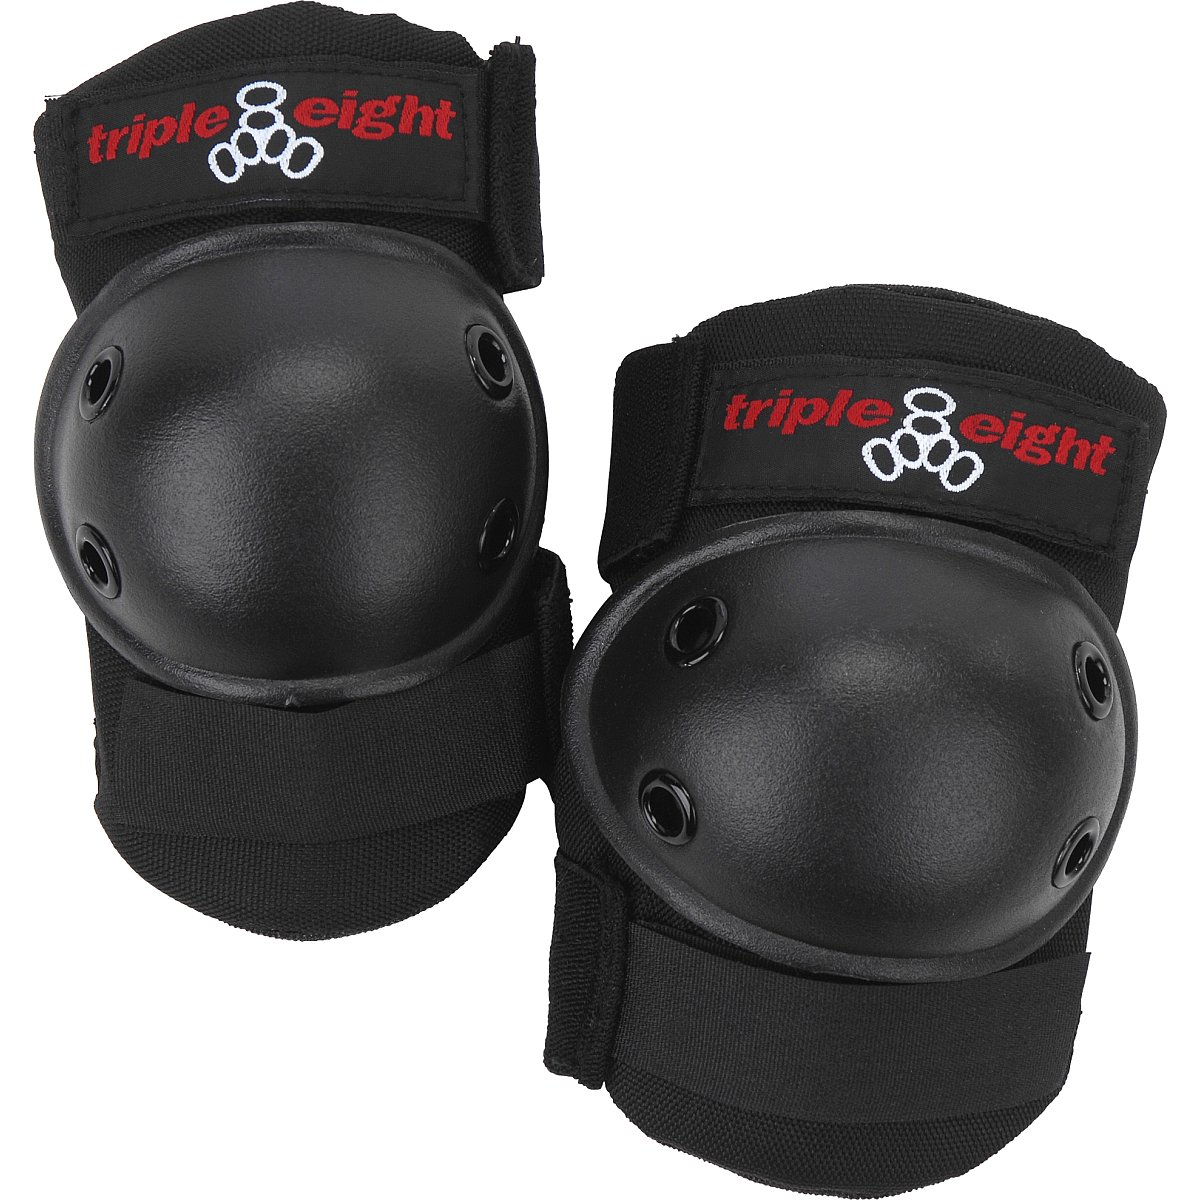 Triple Eight Elbowsavers Elbow Pads One Size Fits All) Triple Eight Sports 604352 60003